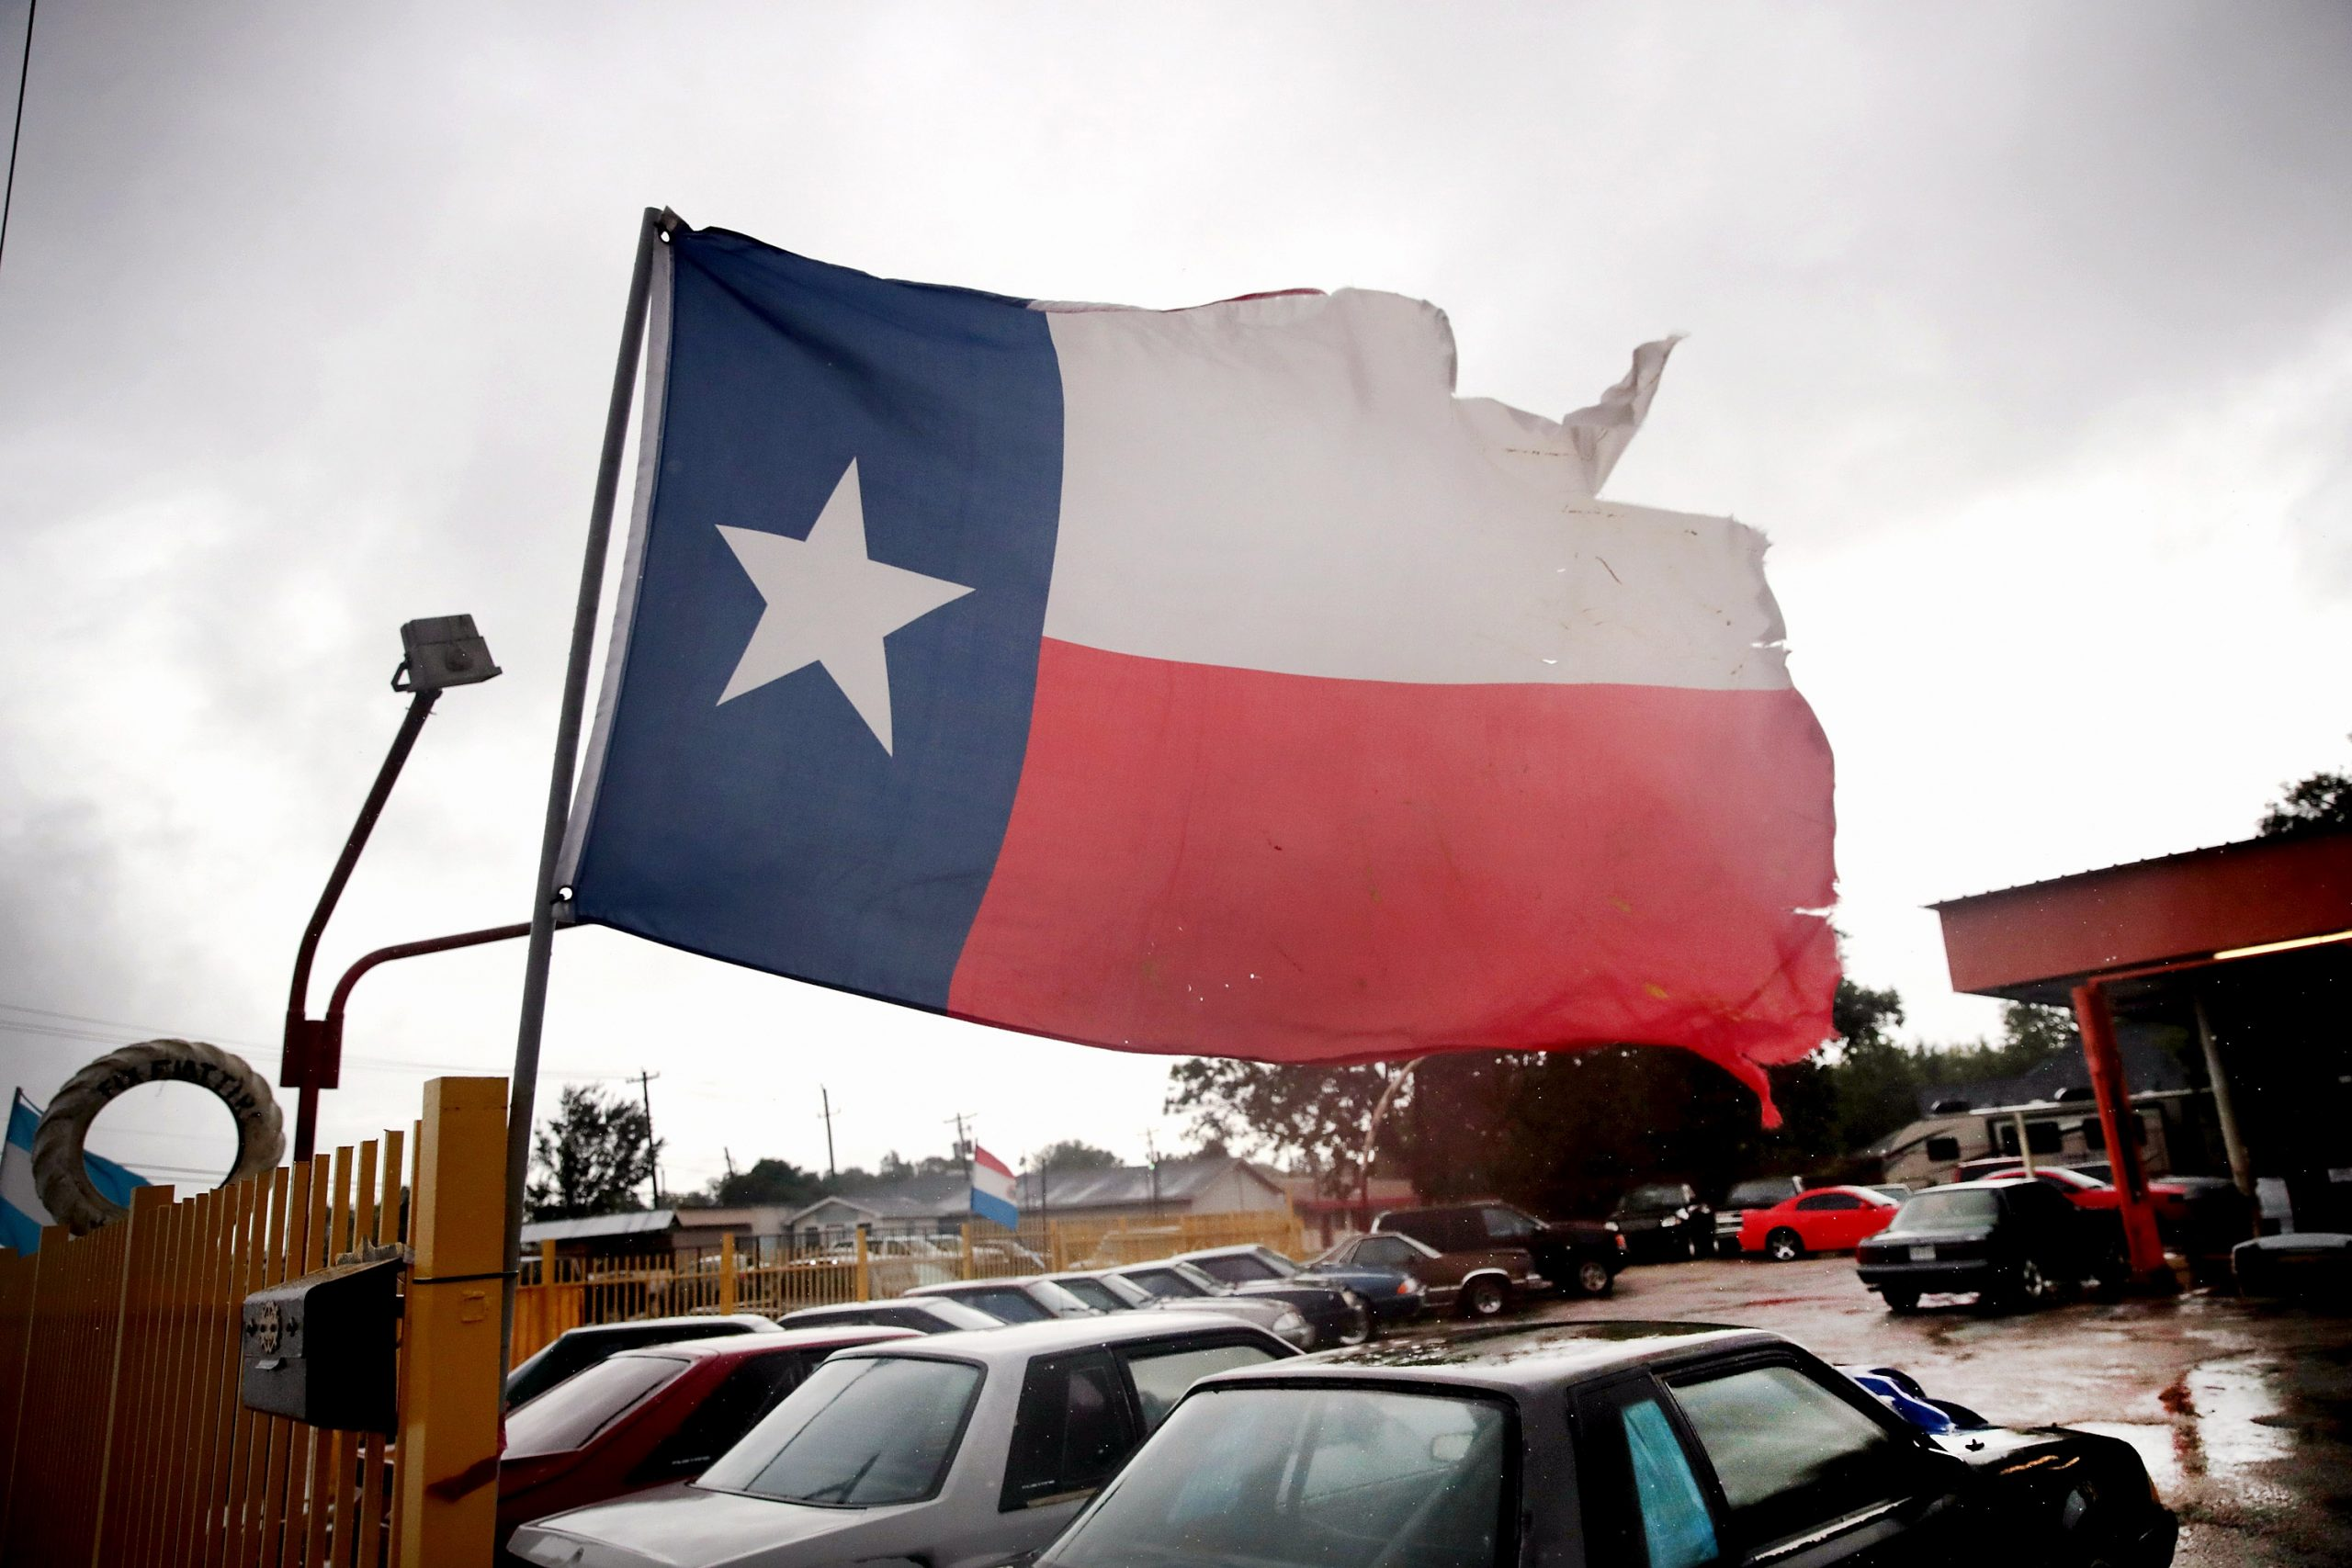 An Swish History of Texas Begins and Ends With White Supremacy